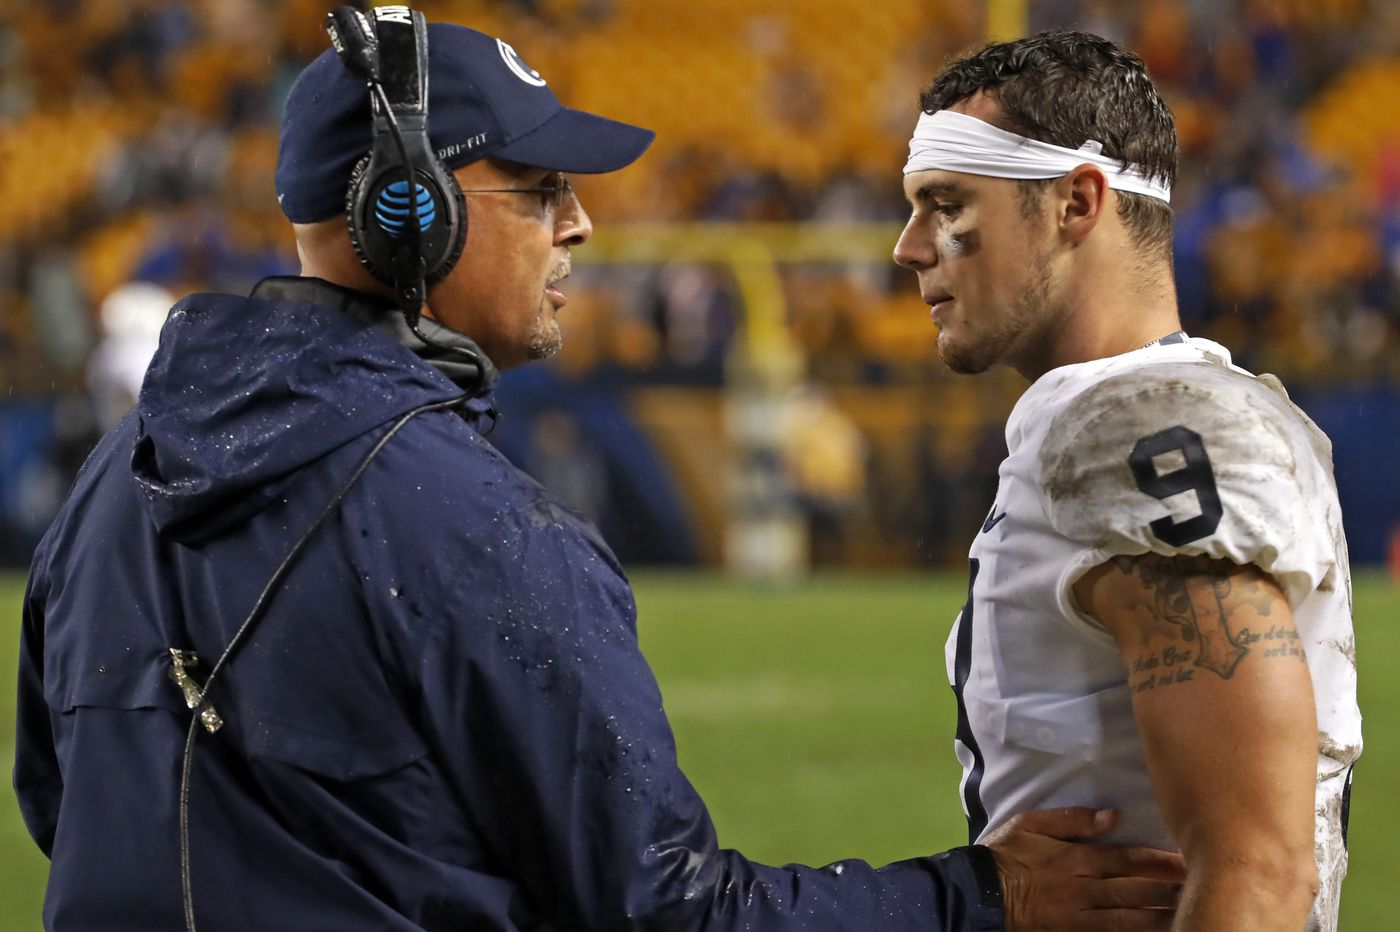 Penn State football coach James Franklin knows how to play the villain | Mike Jensen